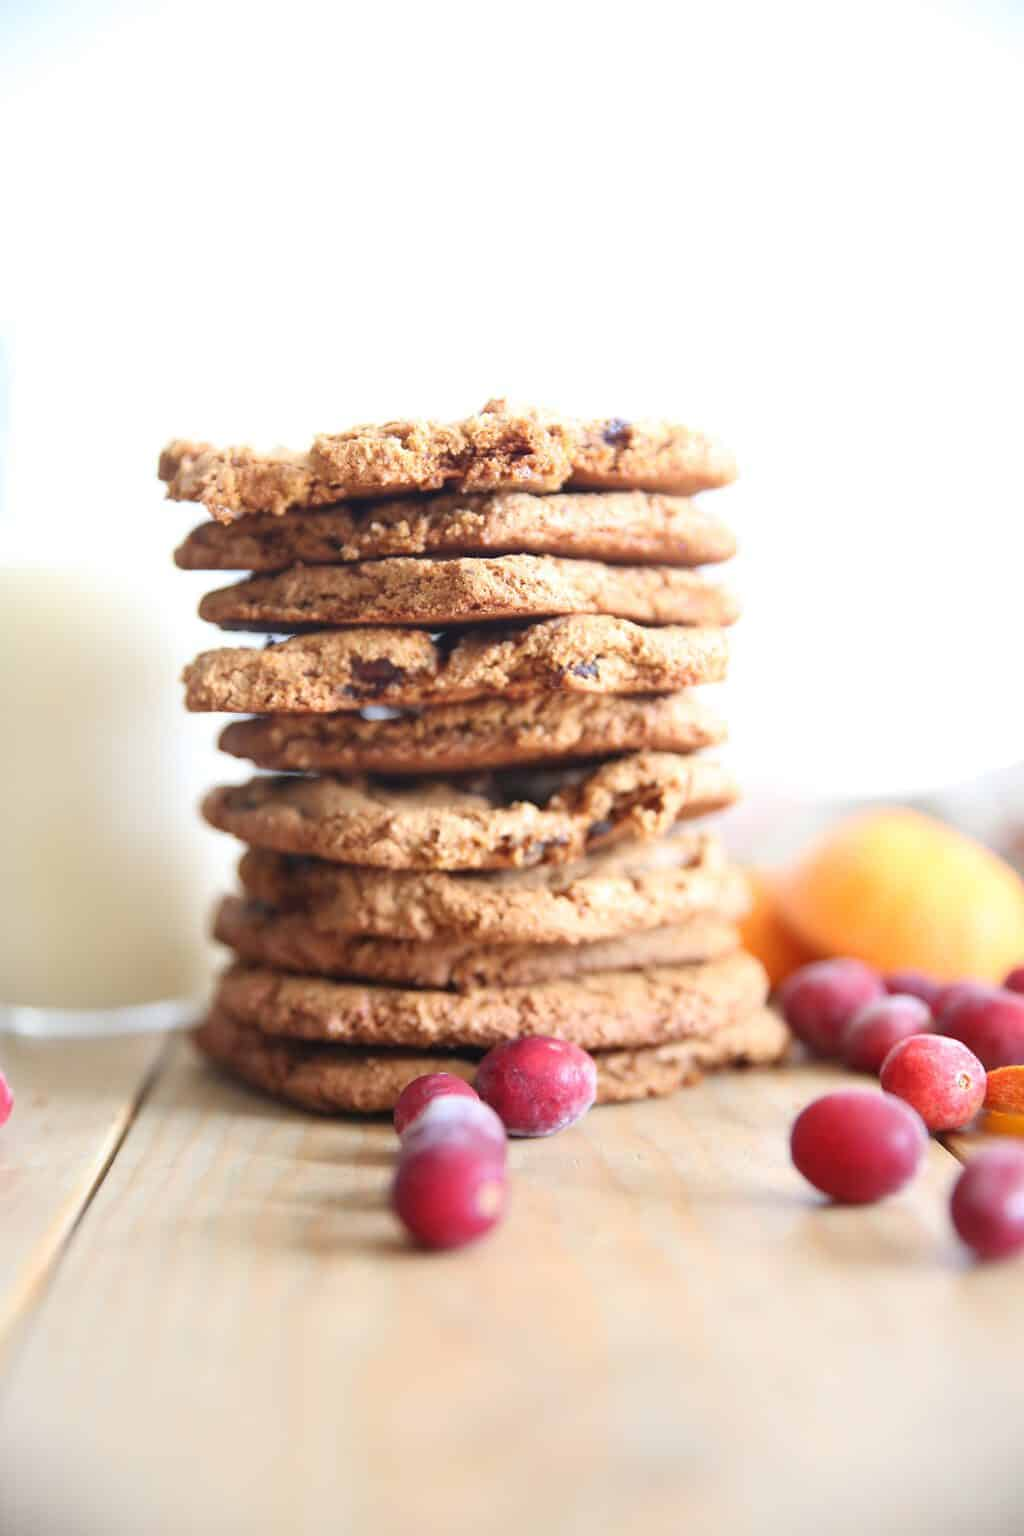 Cranberry cookies are made with almond flour making them gluten free and paleo approved.